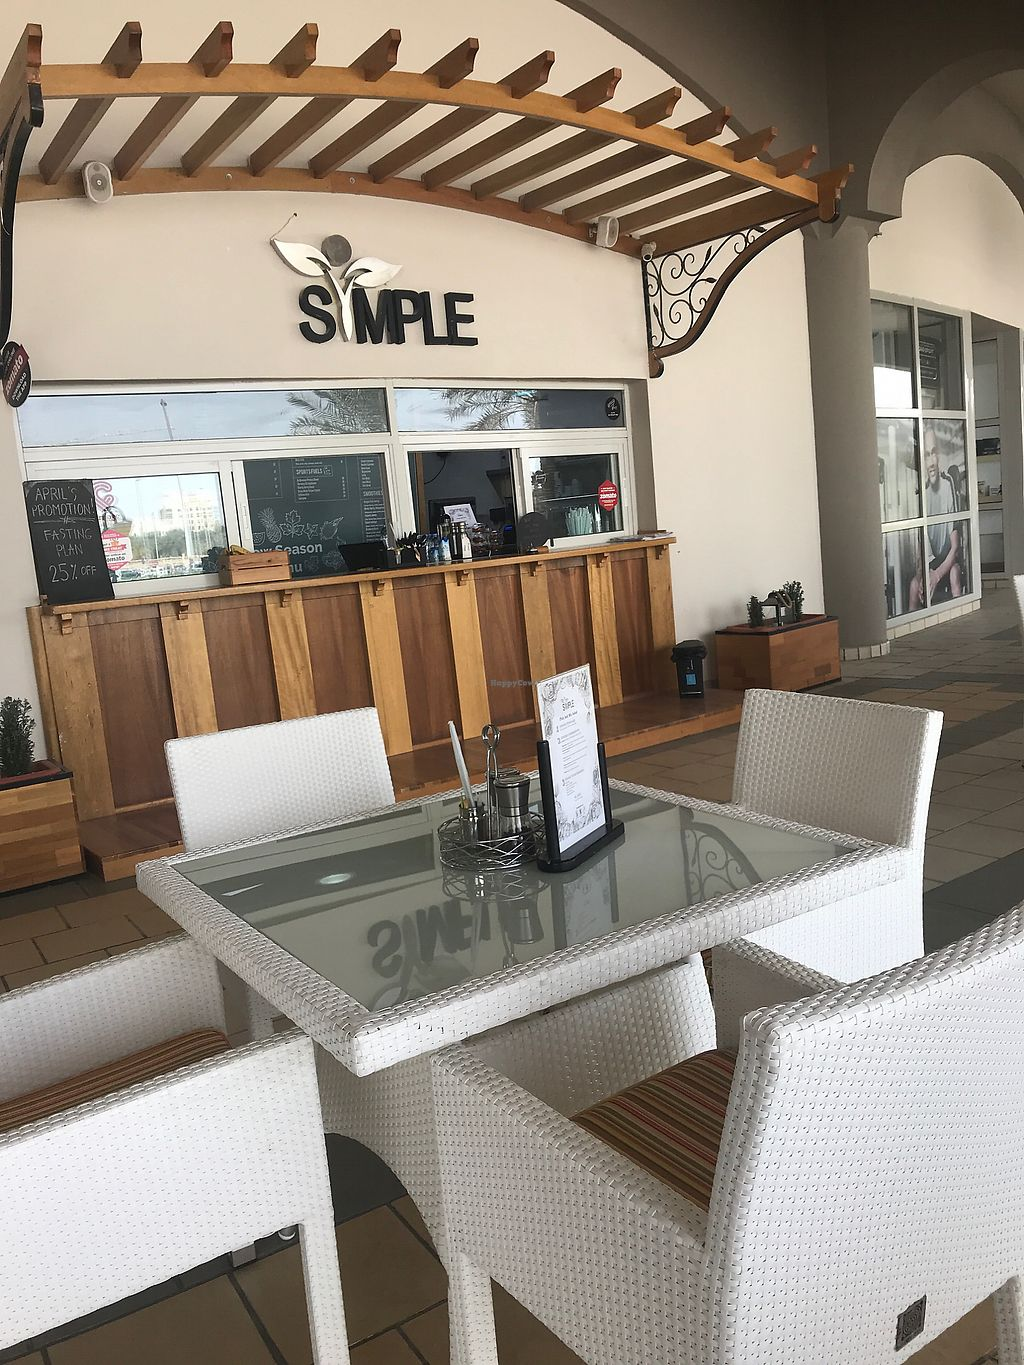 """Photo of Simple Cafe  by <a href=""""/members/profile/FabioDioguardi"""">FabioDioguardi</a> <br/>So great food <br/> April 28, 2018  - <a href='/contact/abuse/image/114052/392088'>Report</a>"""